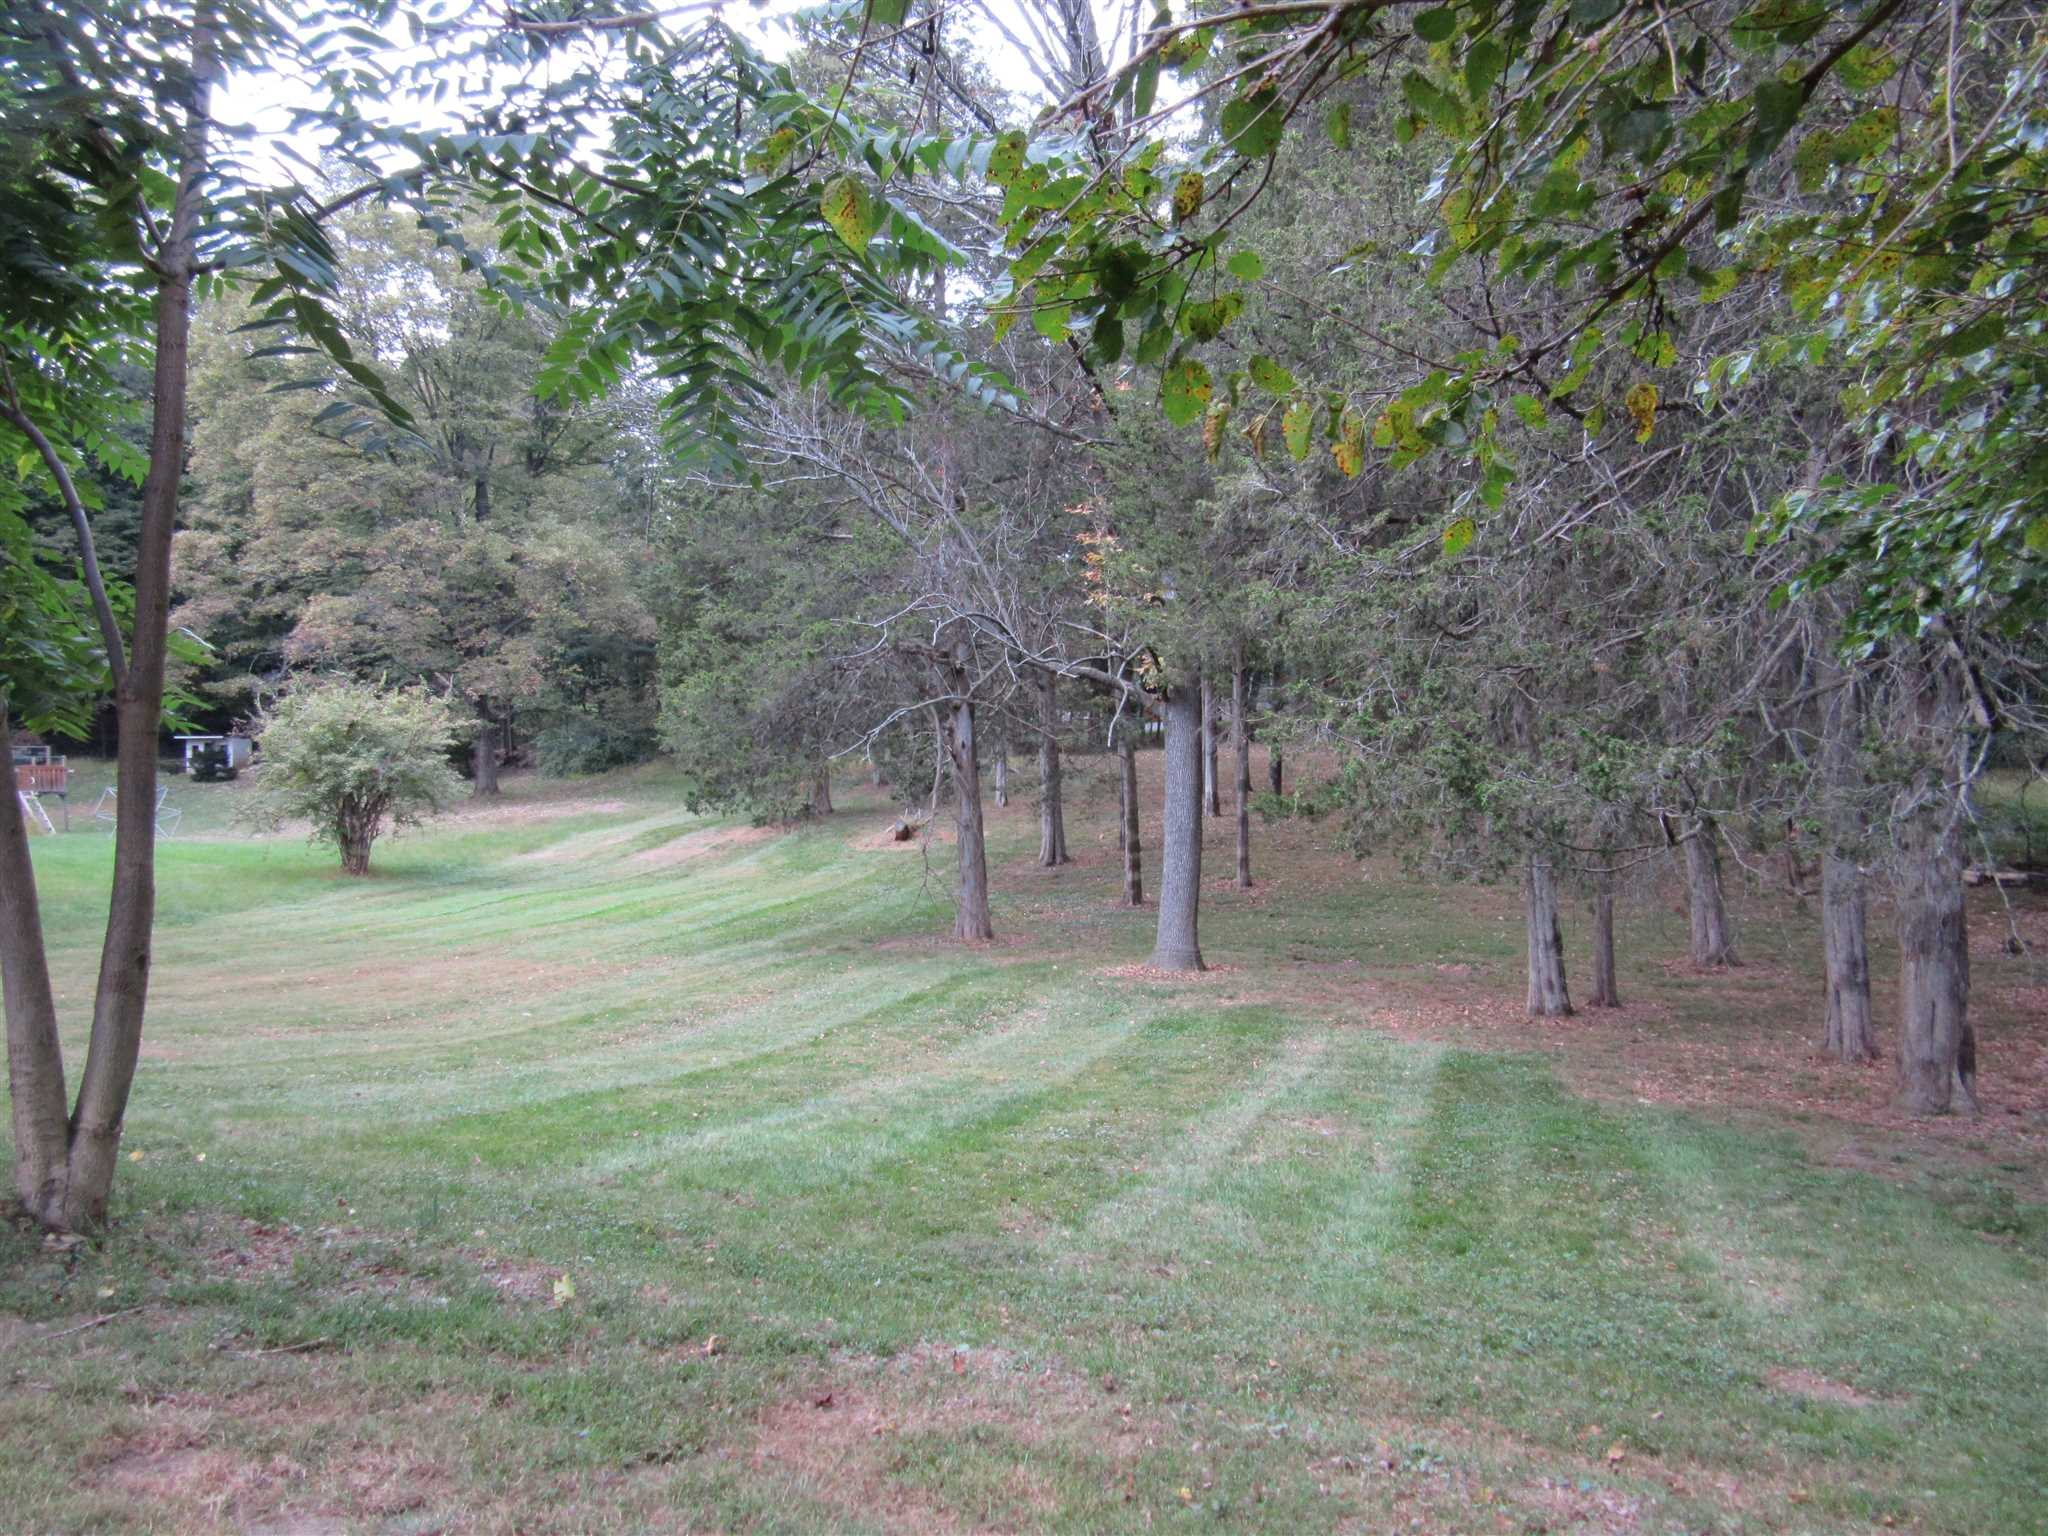 Land for Sale at JUDY LANE JUDY LANE Fishkill, New York 12524 United States